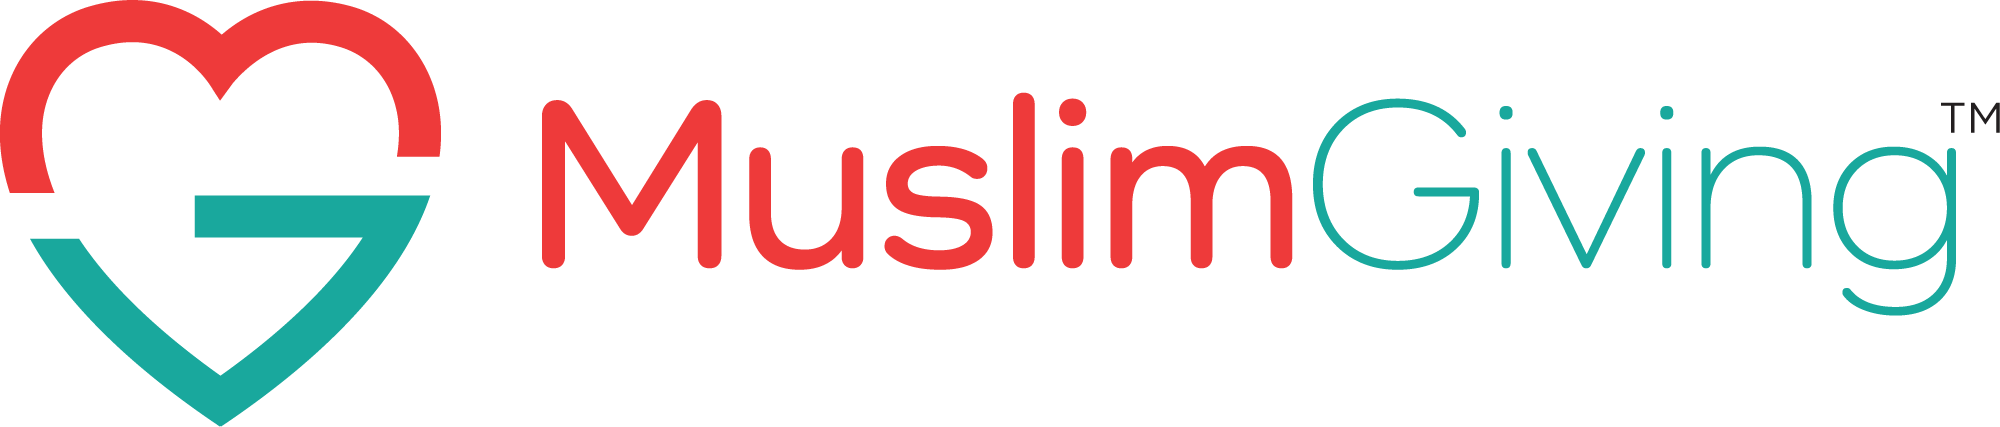 Muslim Giving Logo